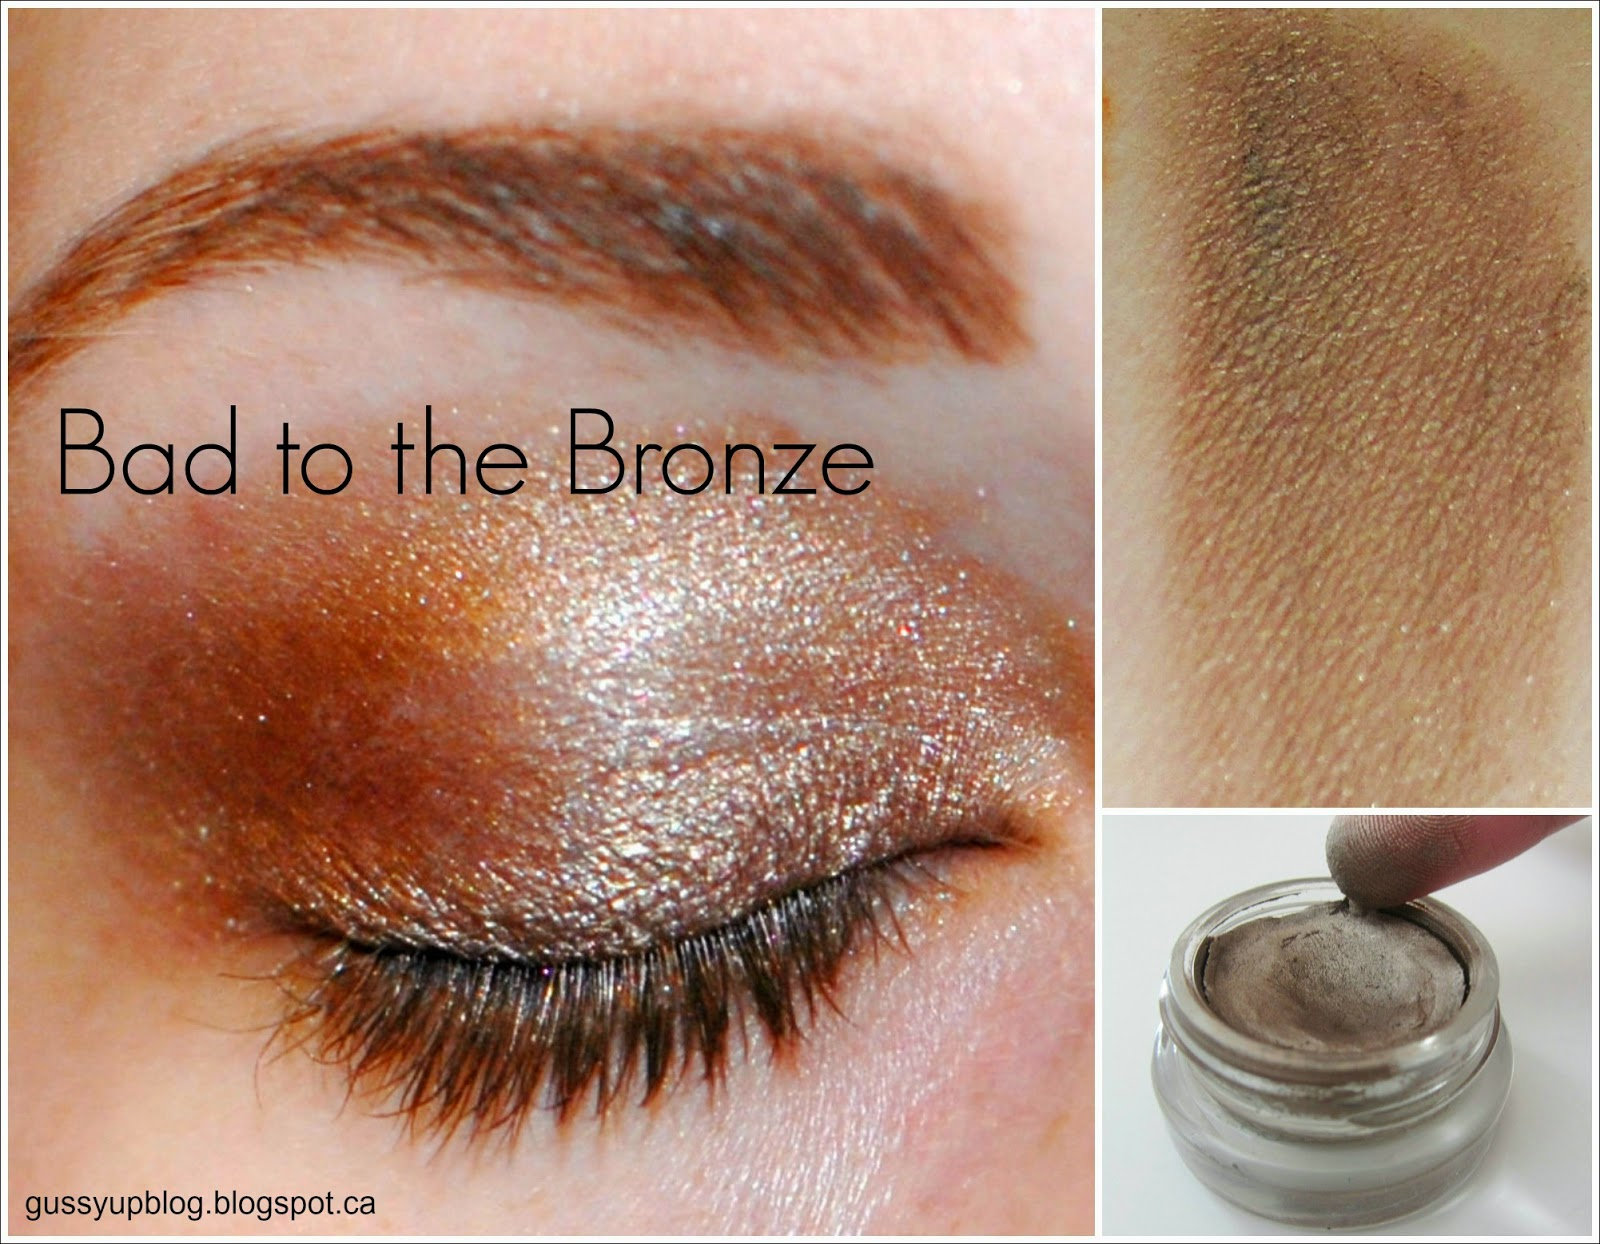 Maybelline Color Tattoo 24 Hour Eyeshadow, Bad to the Bronze, Review and Swatches